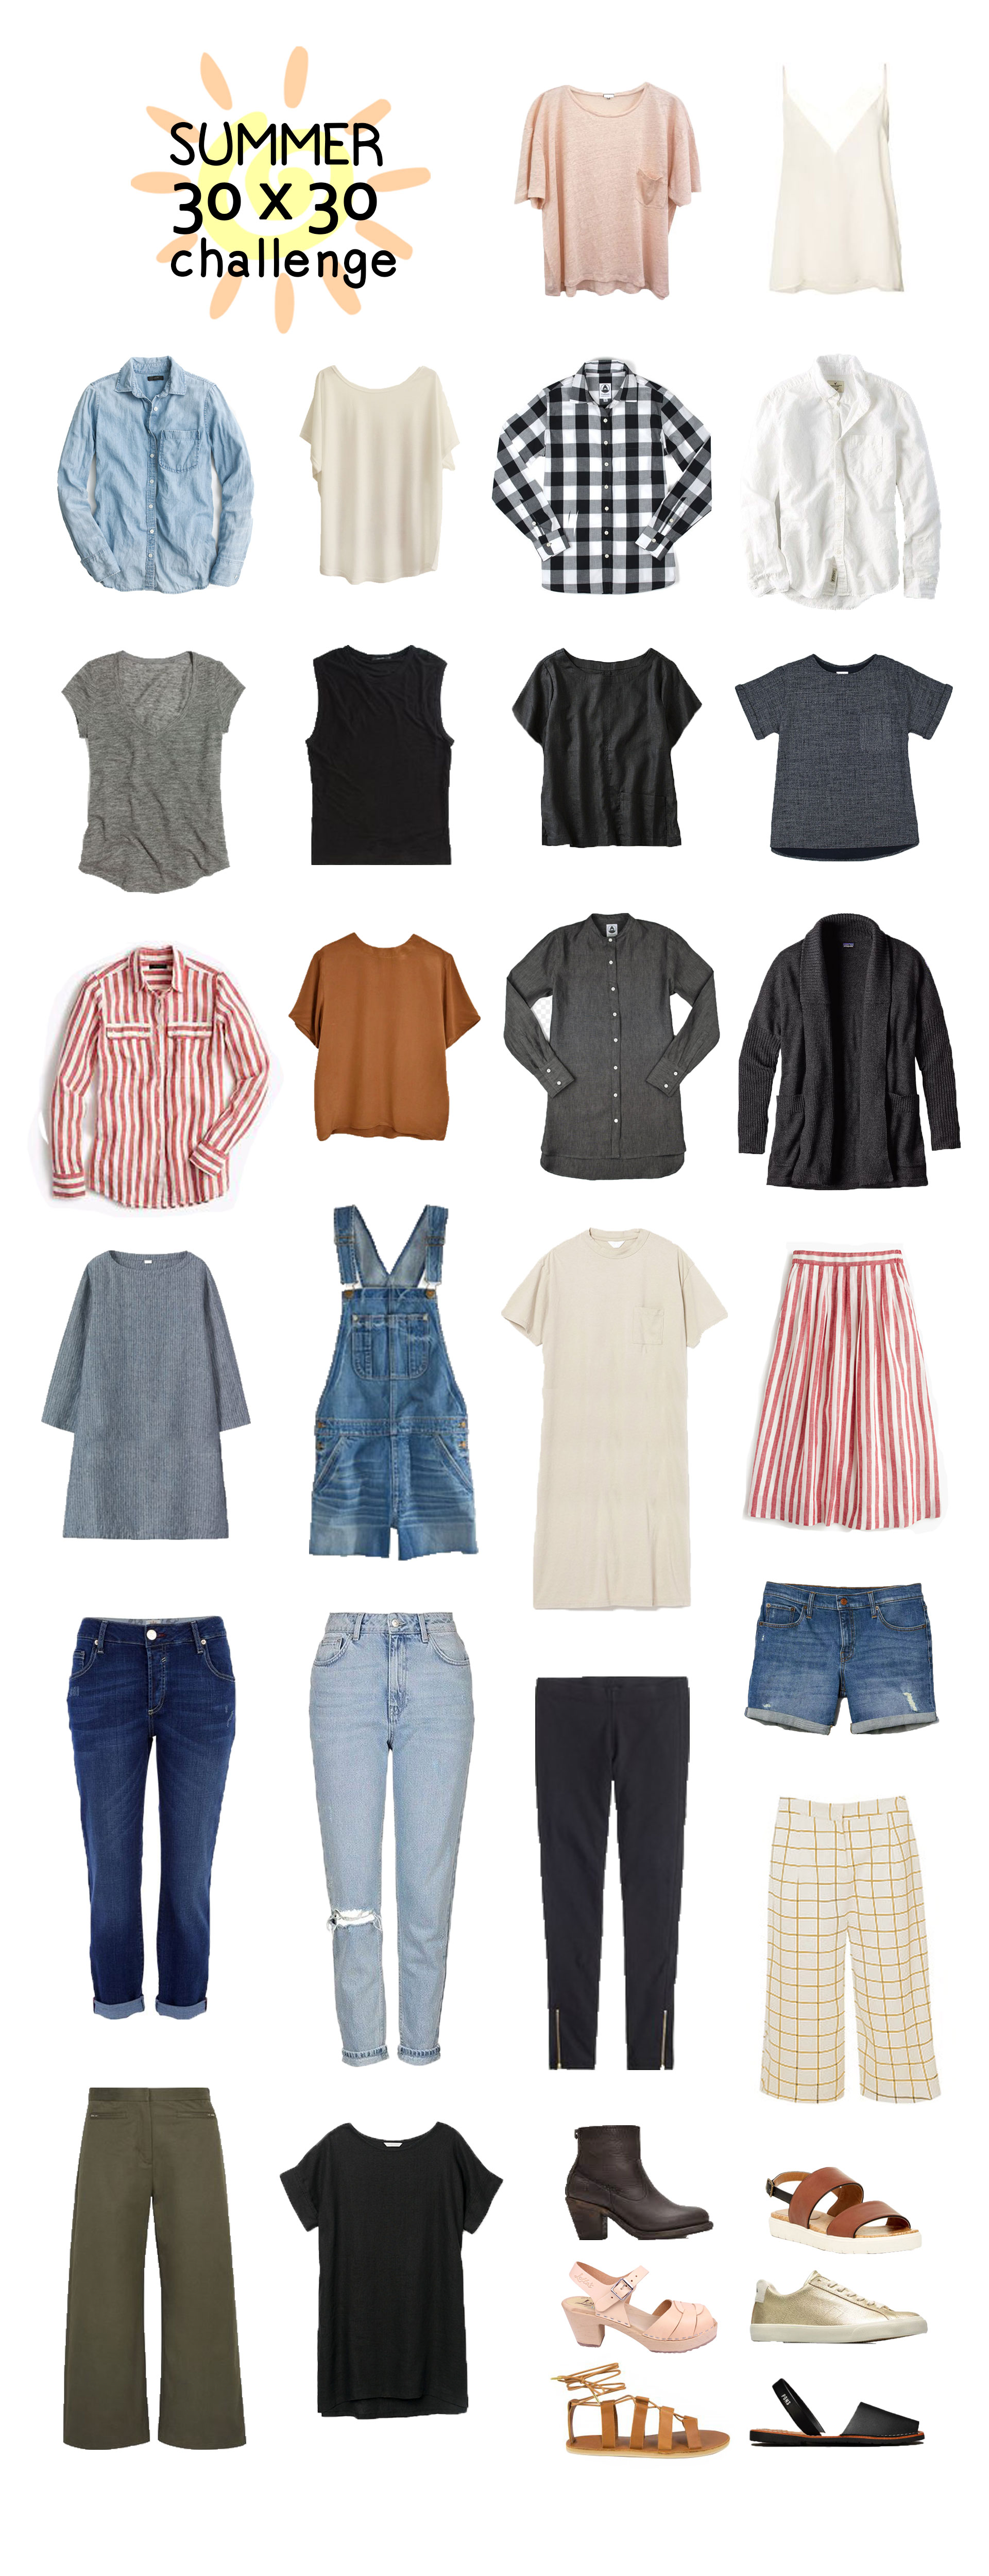 30x30, 30x30 wardrobe challenge, capsule wardrobe, ethical wardrobe. mini capsule, summer capsule, summer outfits, sustainable wardrobe, transitional capsule